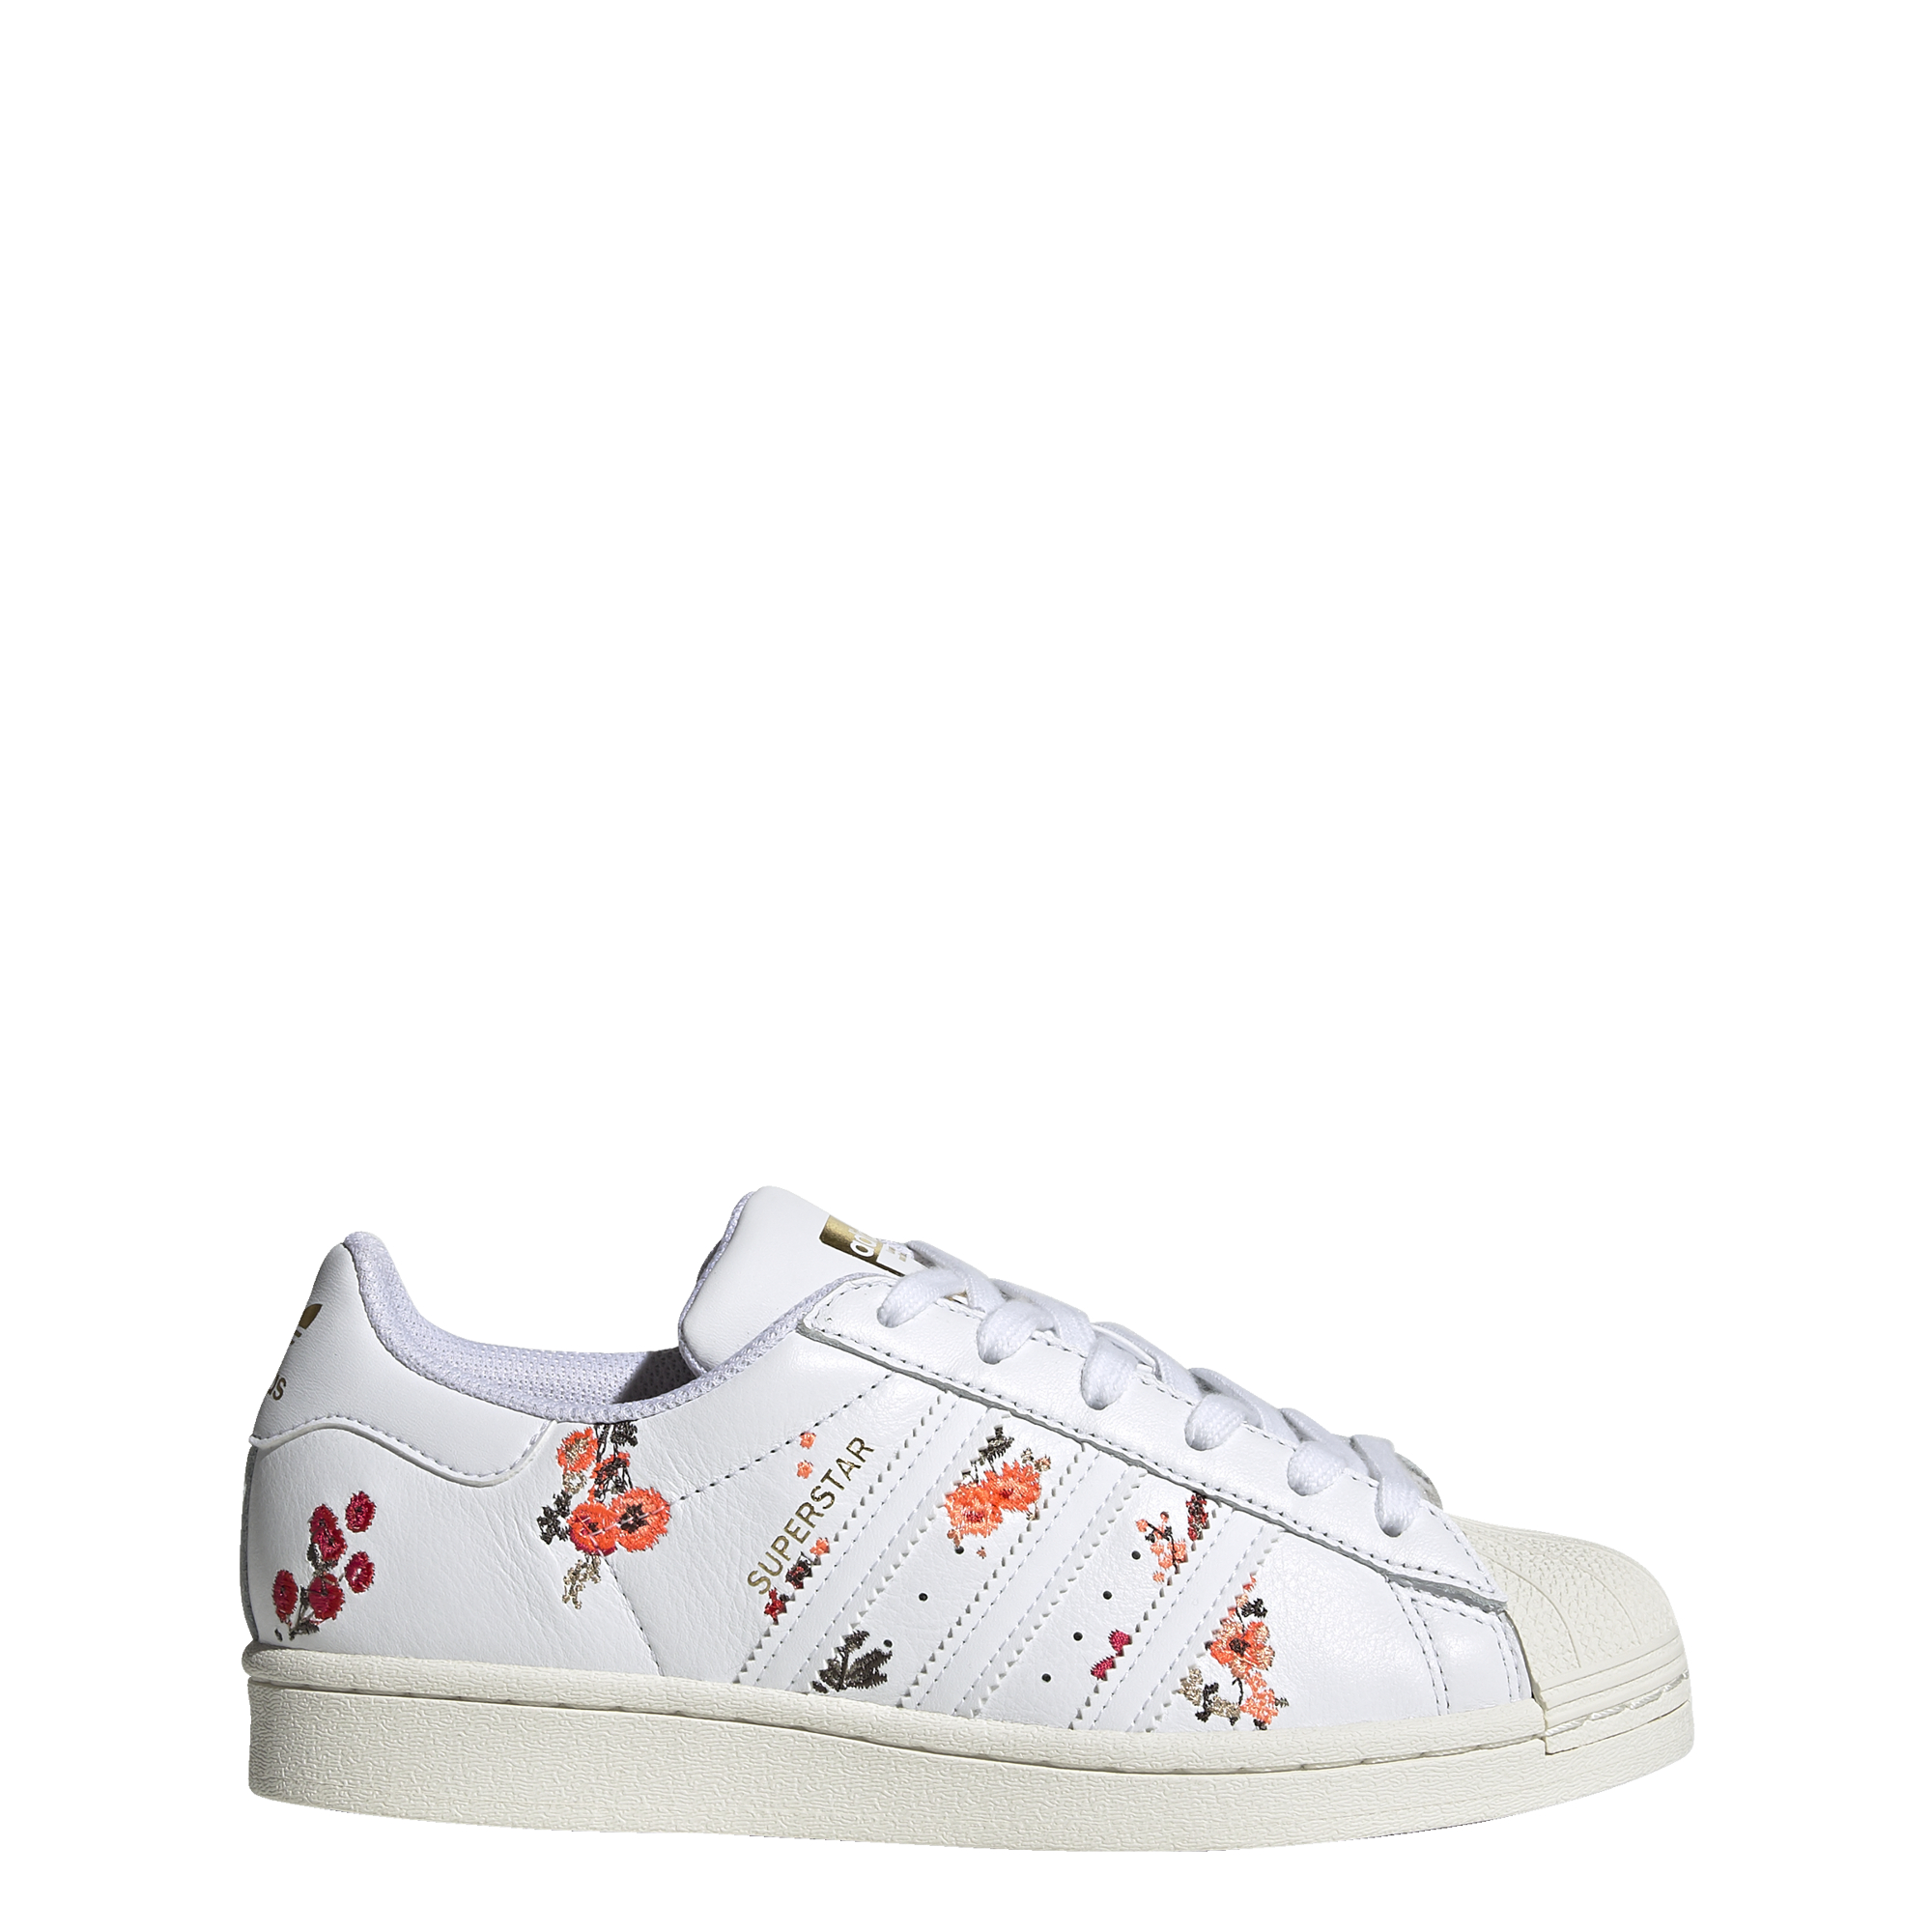 adidas shoes for women white